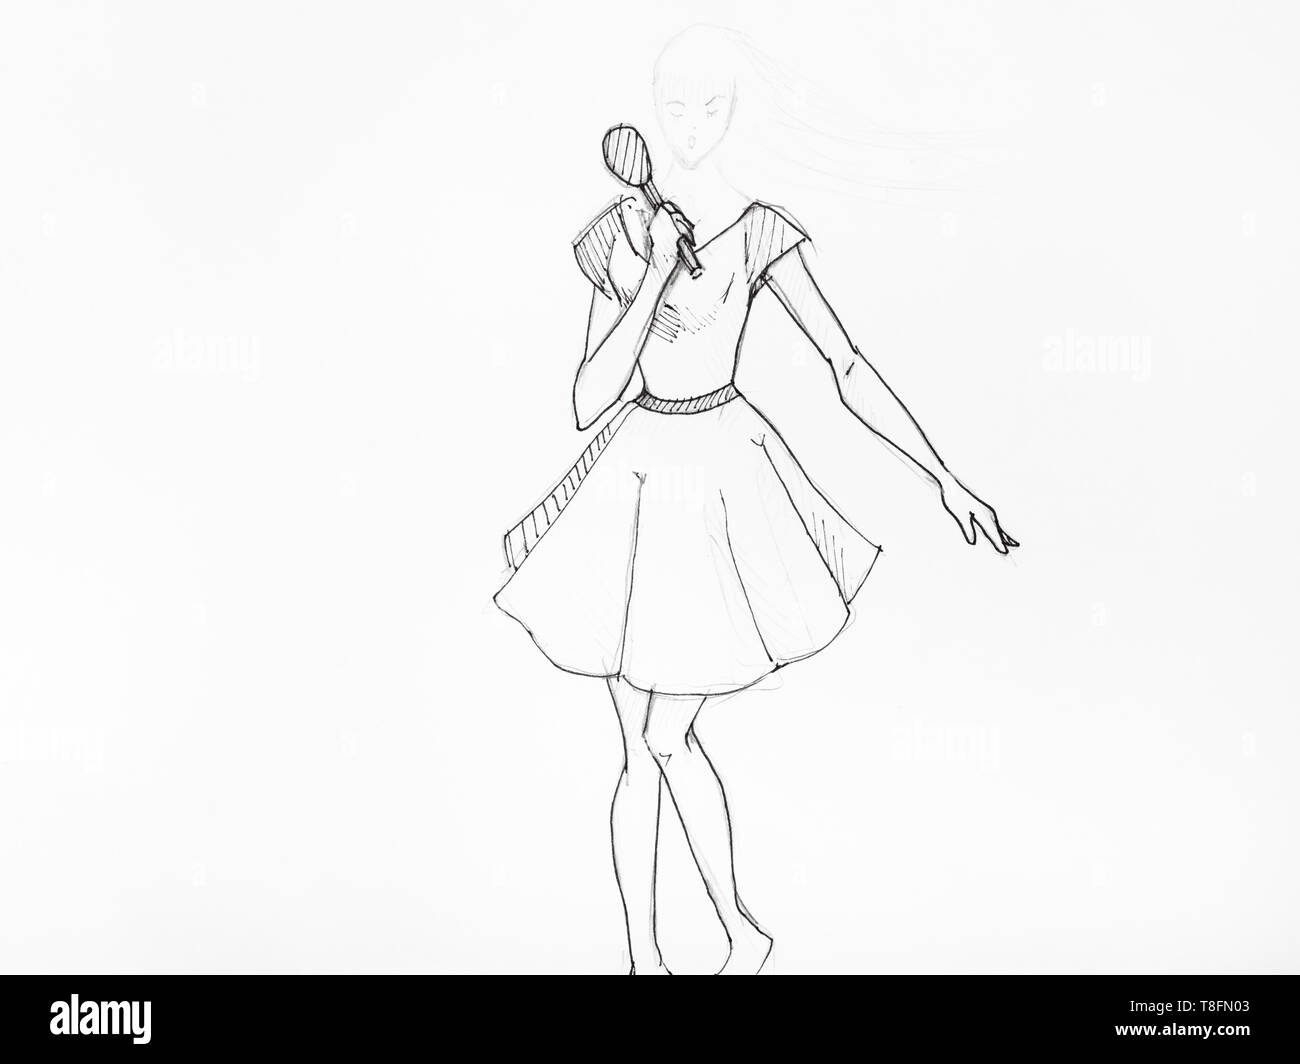 Sketch of dancing girl in short wide dress with microphone hand